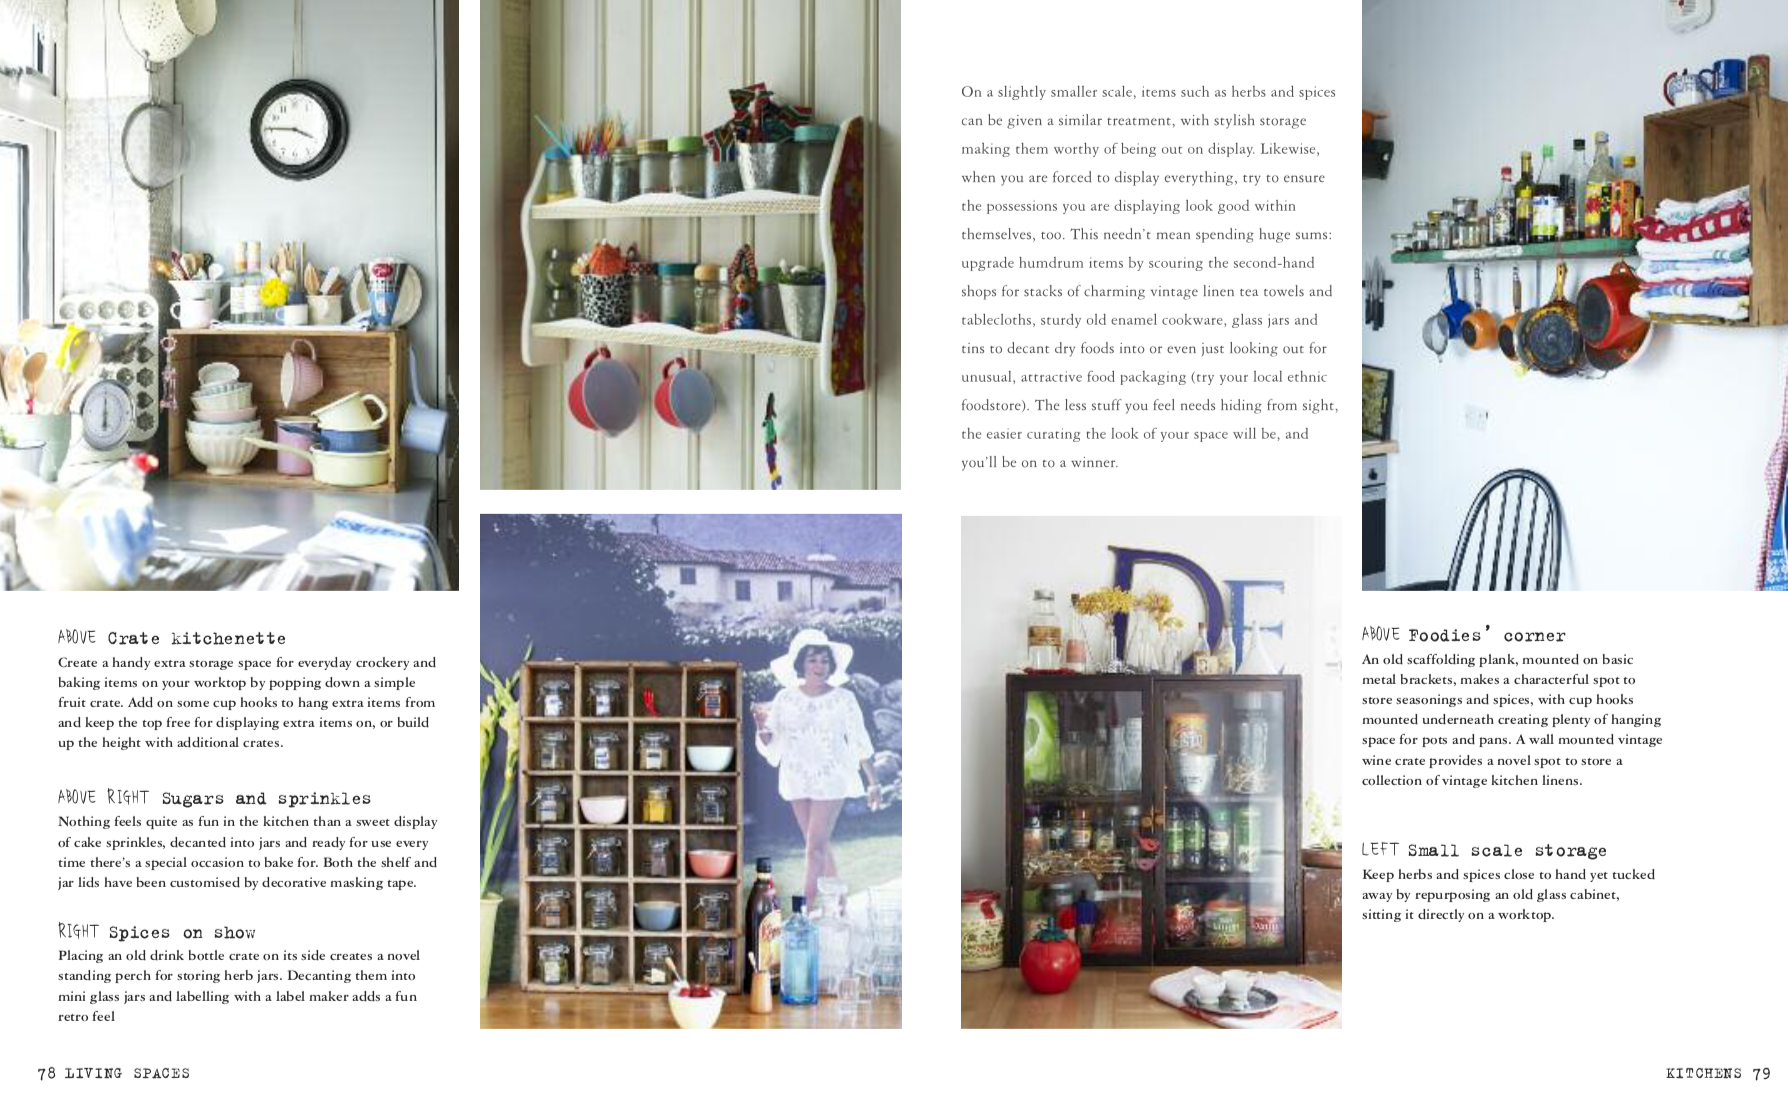 Insta Style for Your Living Space by Joanna Thornhill P78-79